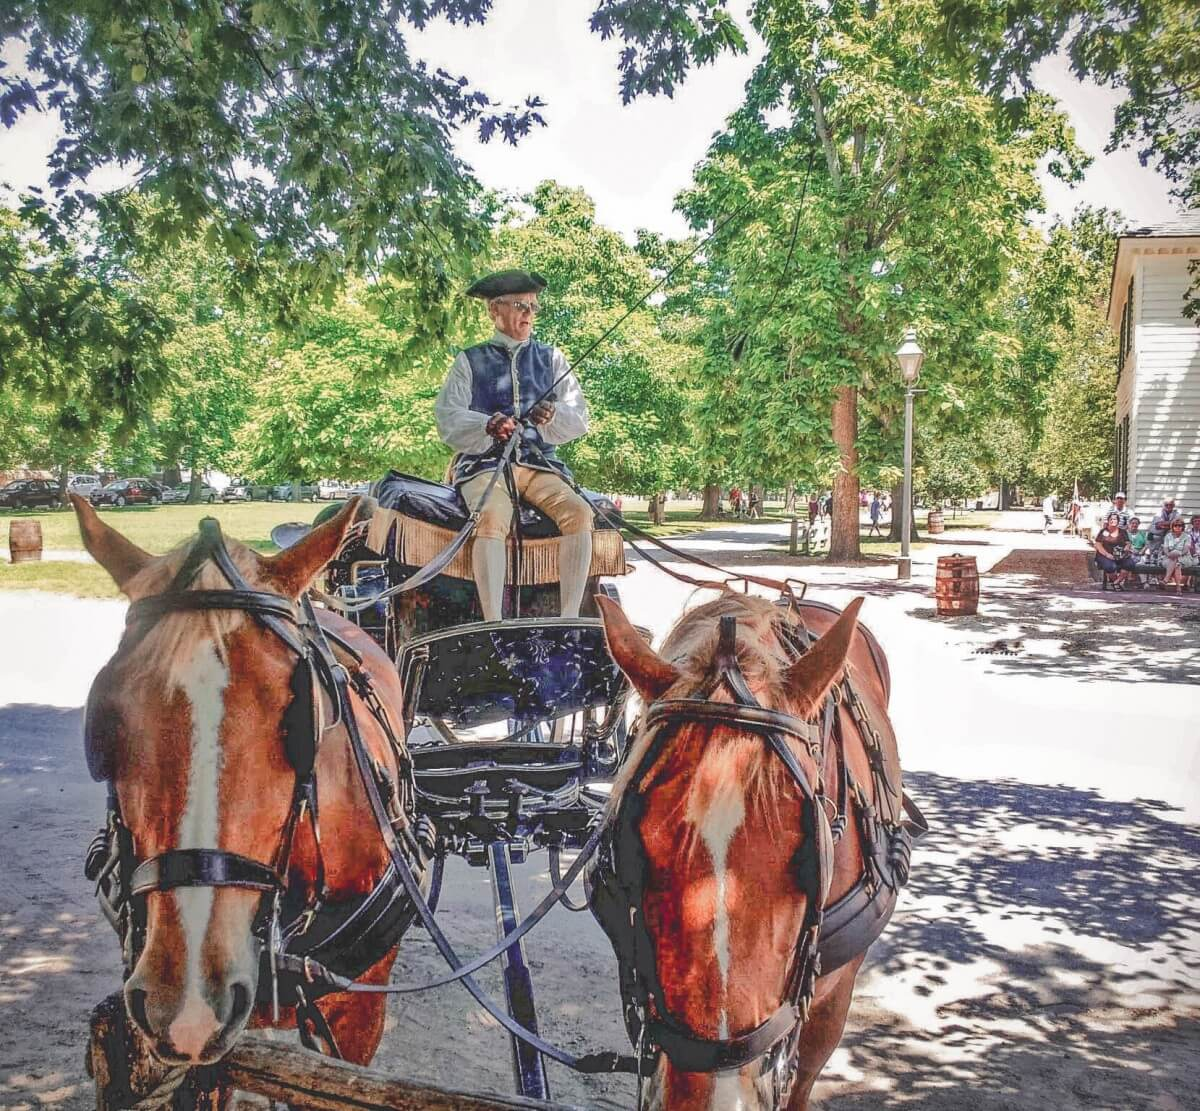 A man, in full revolutionary period costume attire, riding a horse-drawn carriage in Colonial Williamsburg.